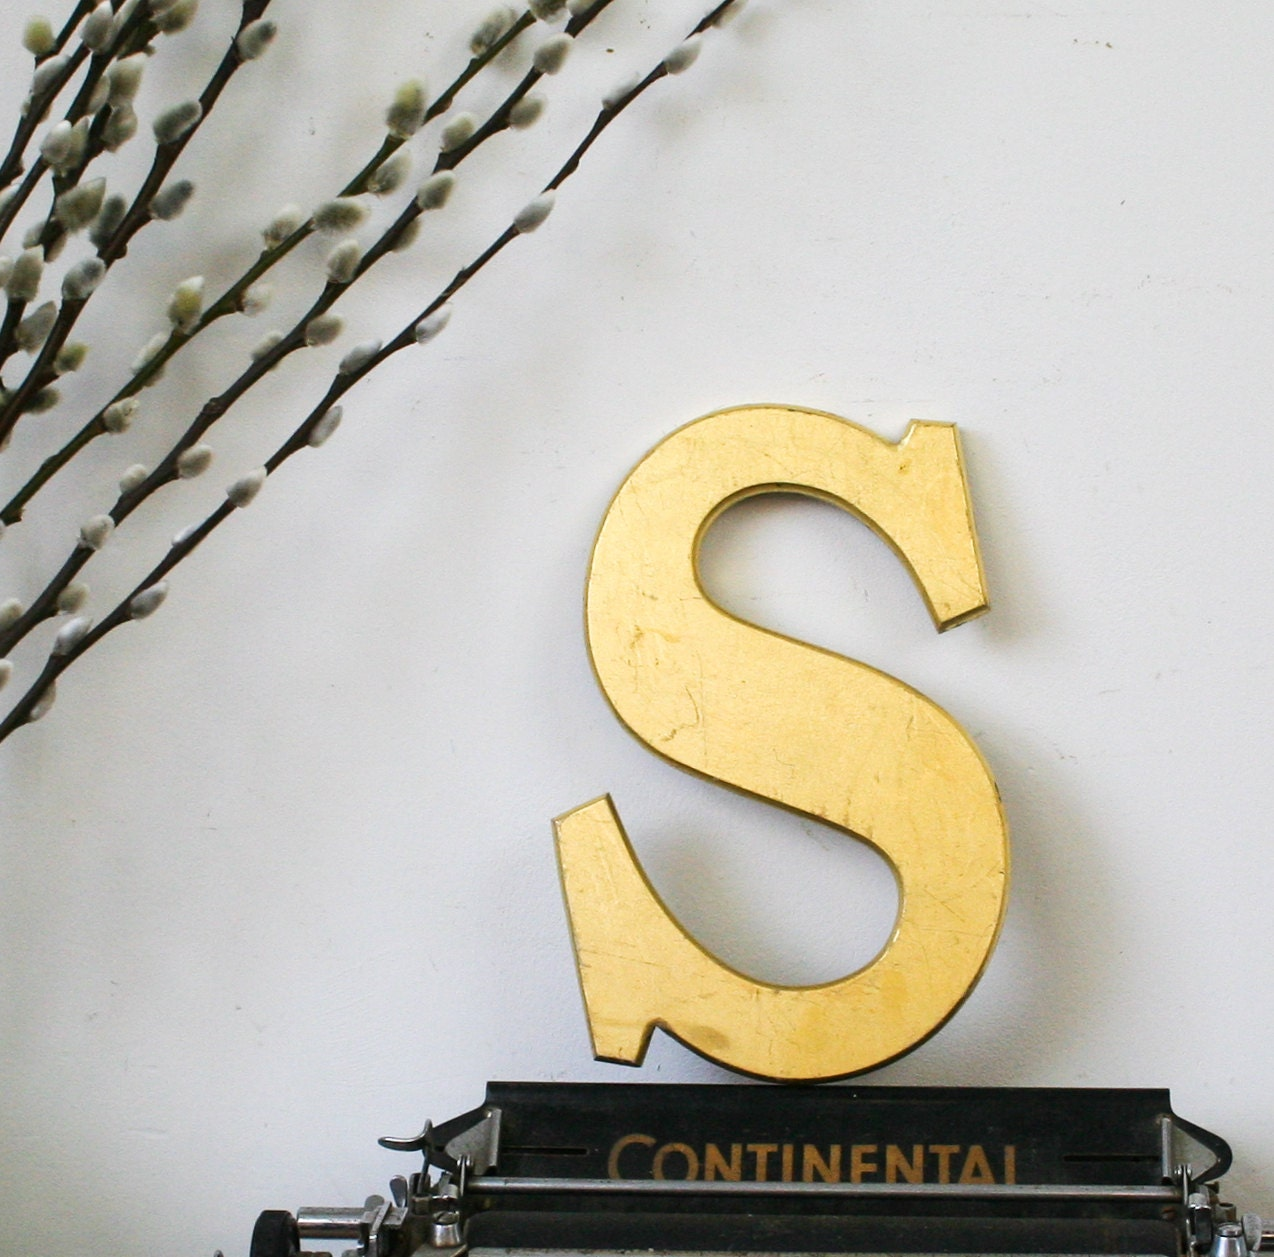 Vintage Shop letter S, 24 carat gold leaf, antique signage - BonnieandBell